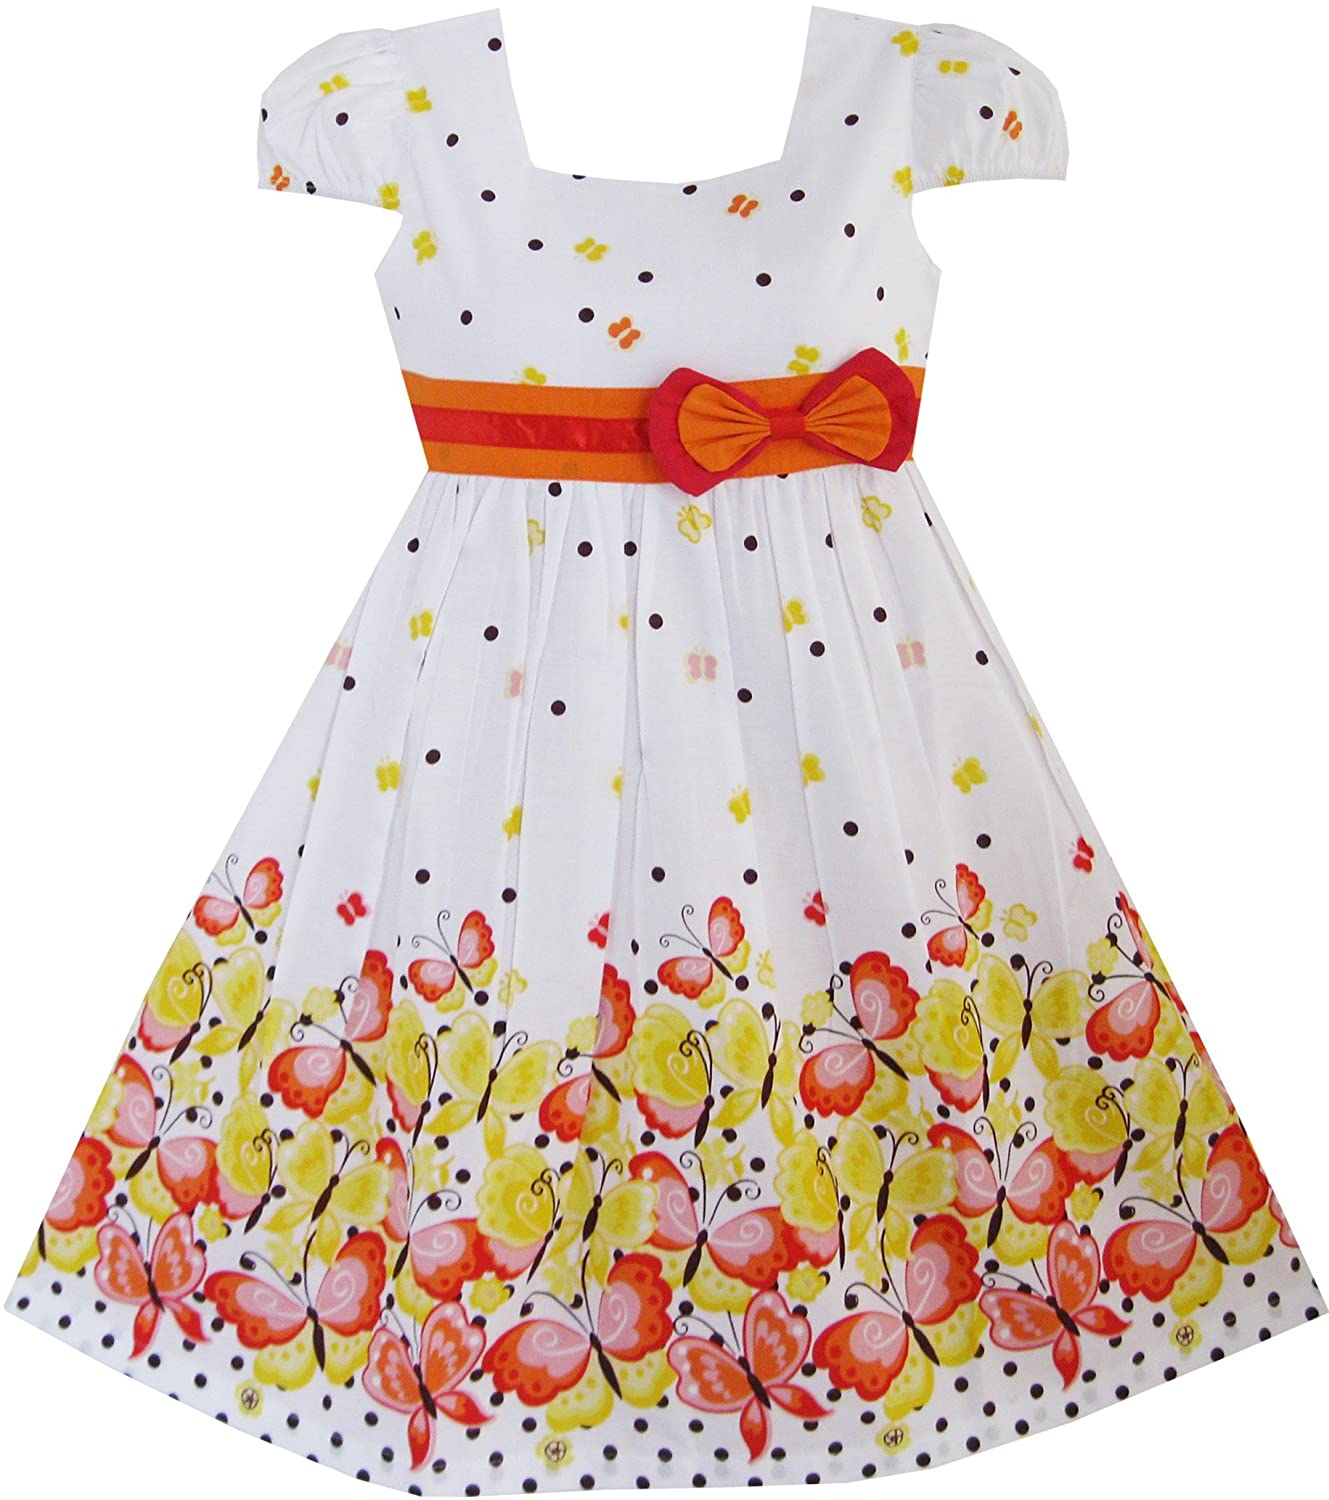 Sunny Fashion Girls Dress Short Sleeve Butterfly Dot School